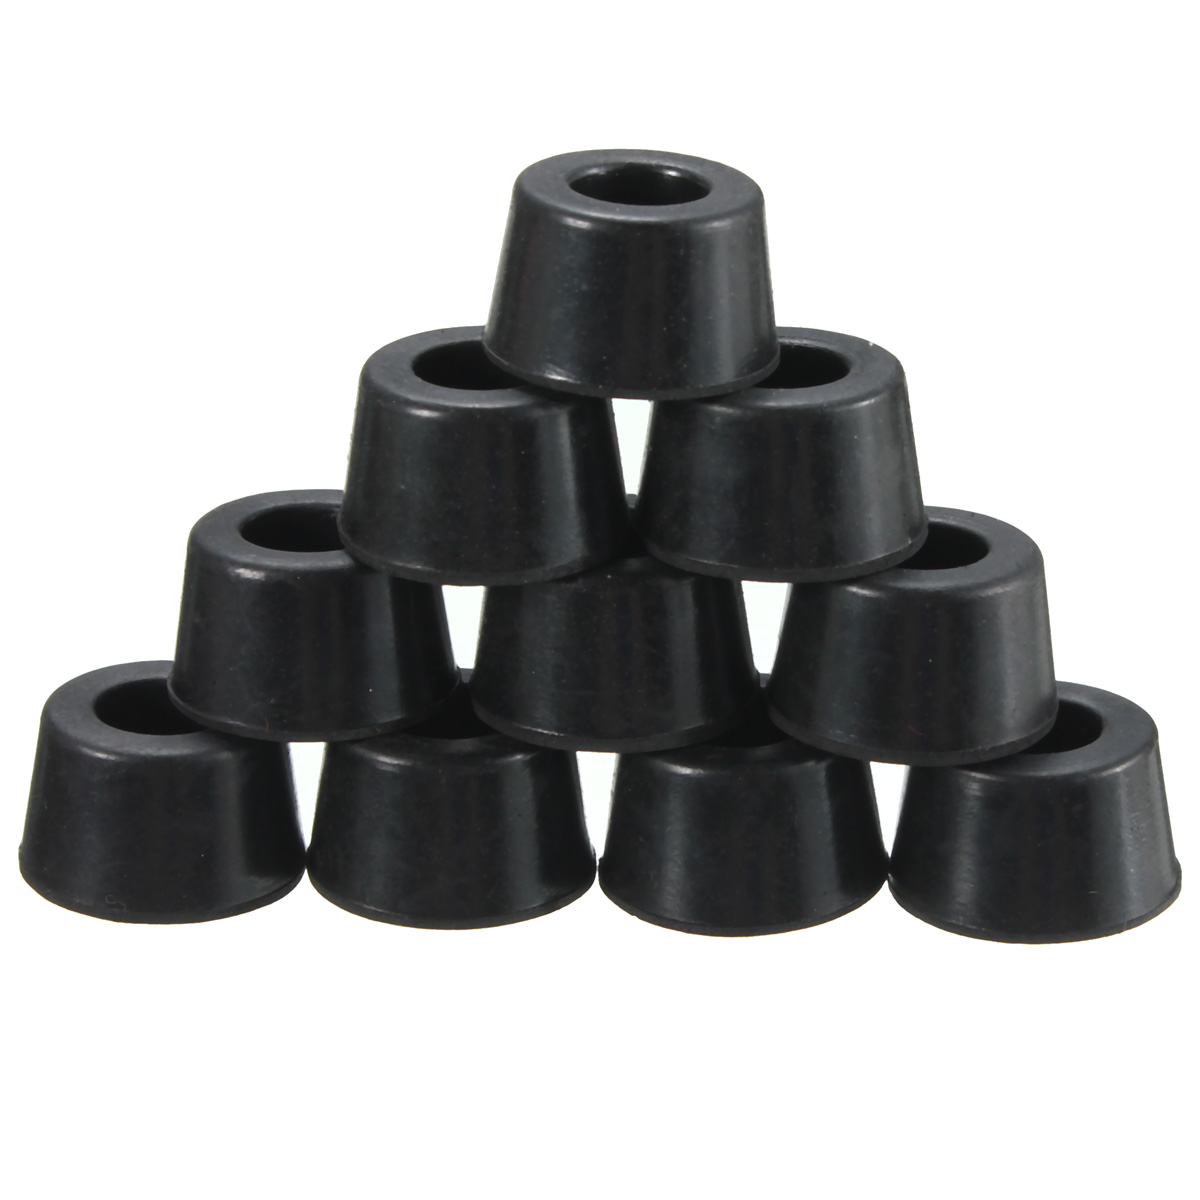 10pcs 16x13x10mm Rubber Chair Ferrule Anti Scratch Floor Table Feet Leg Protector